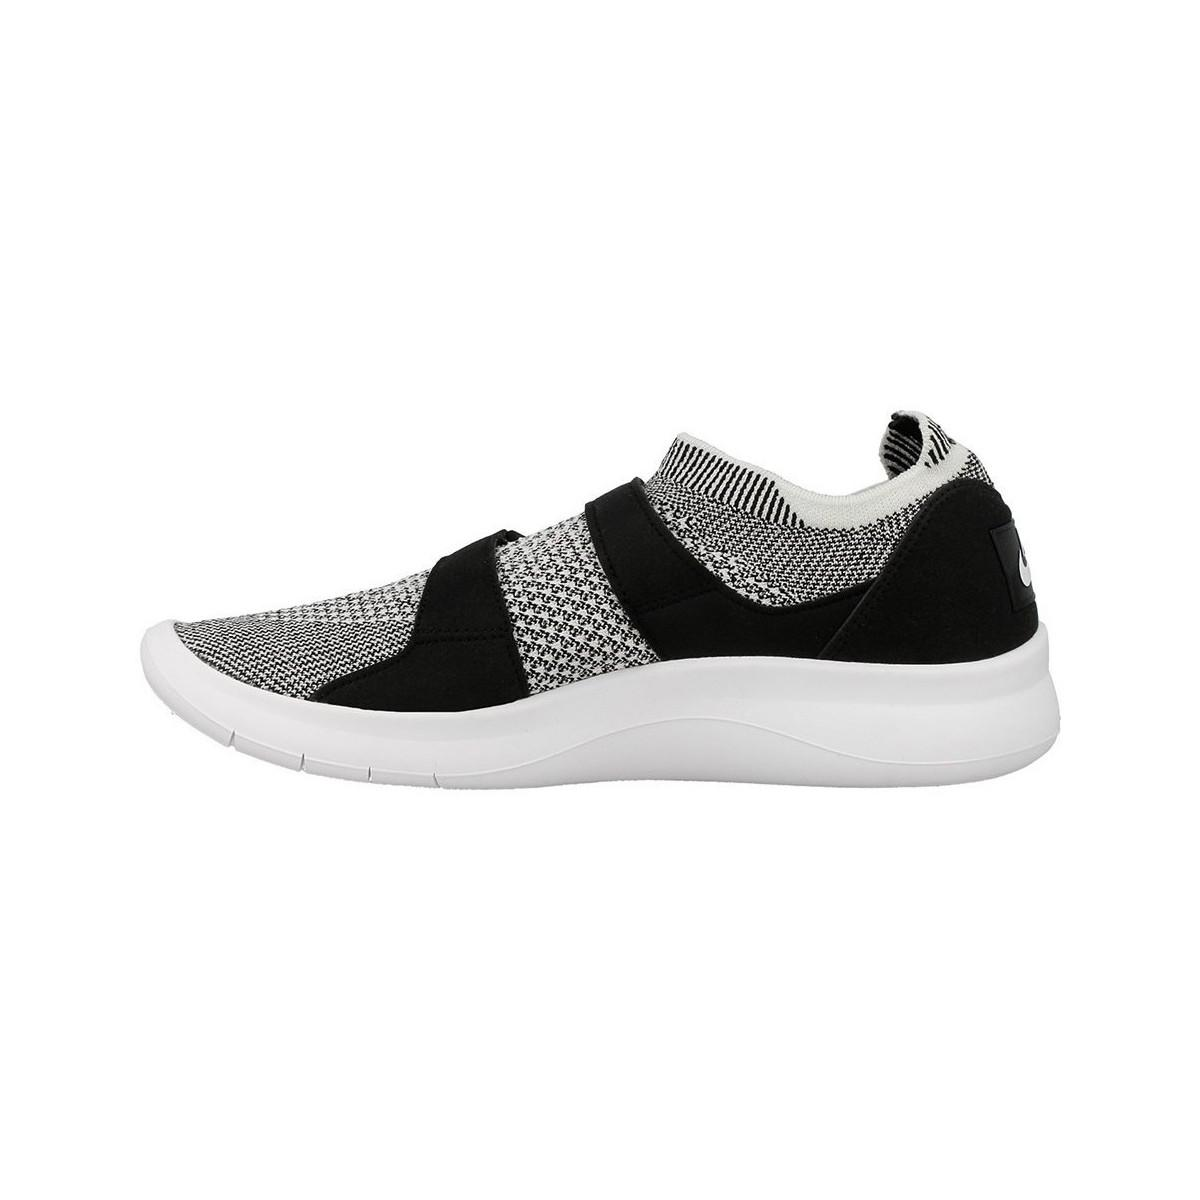 Nike W Air Sockracer Flyknit Women's Shoes (trainers) In White